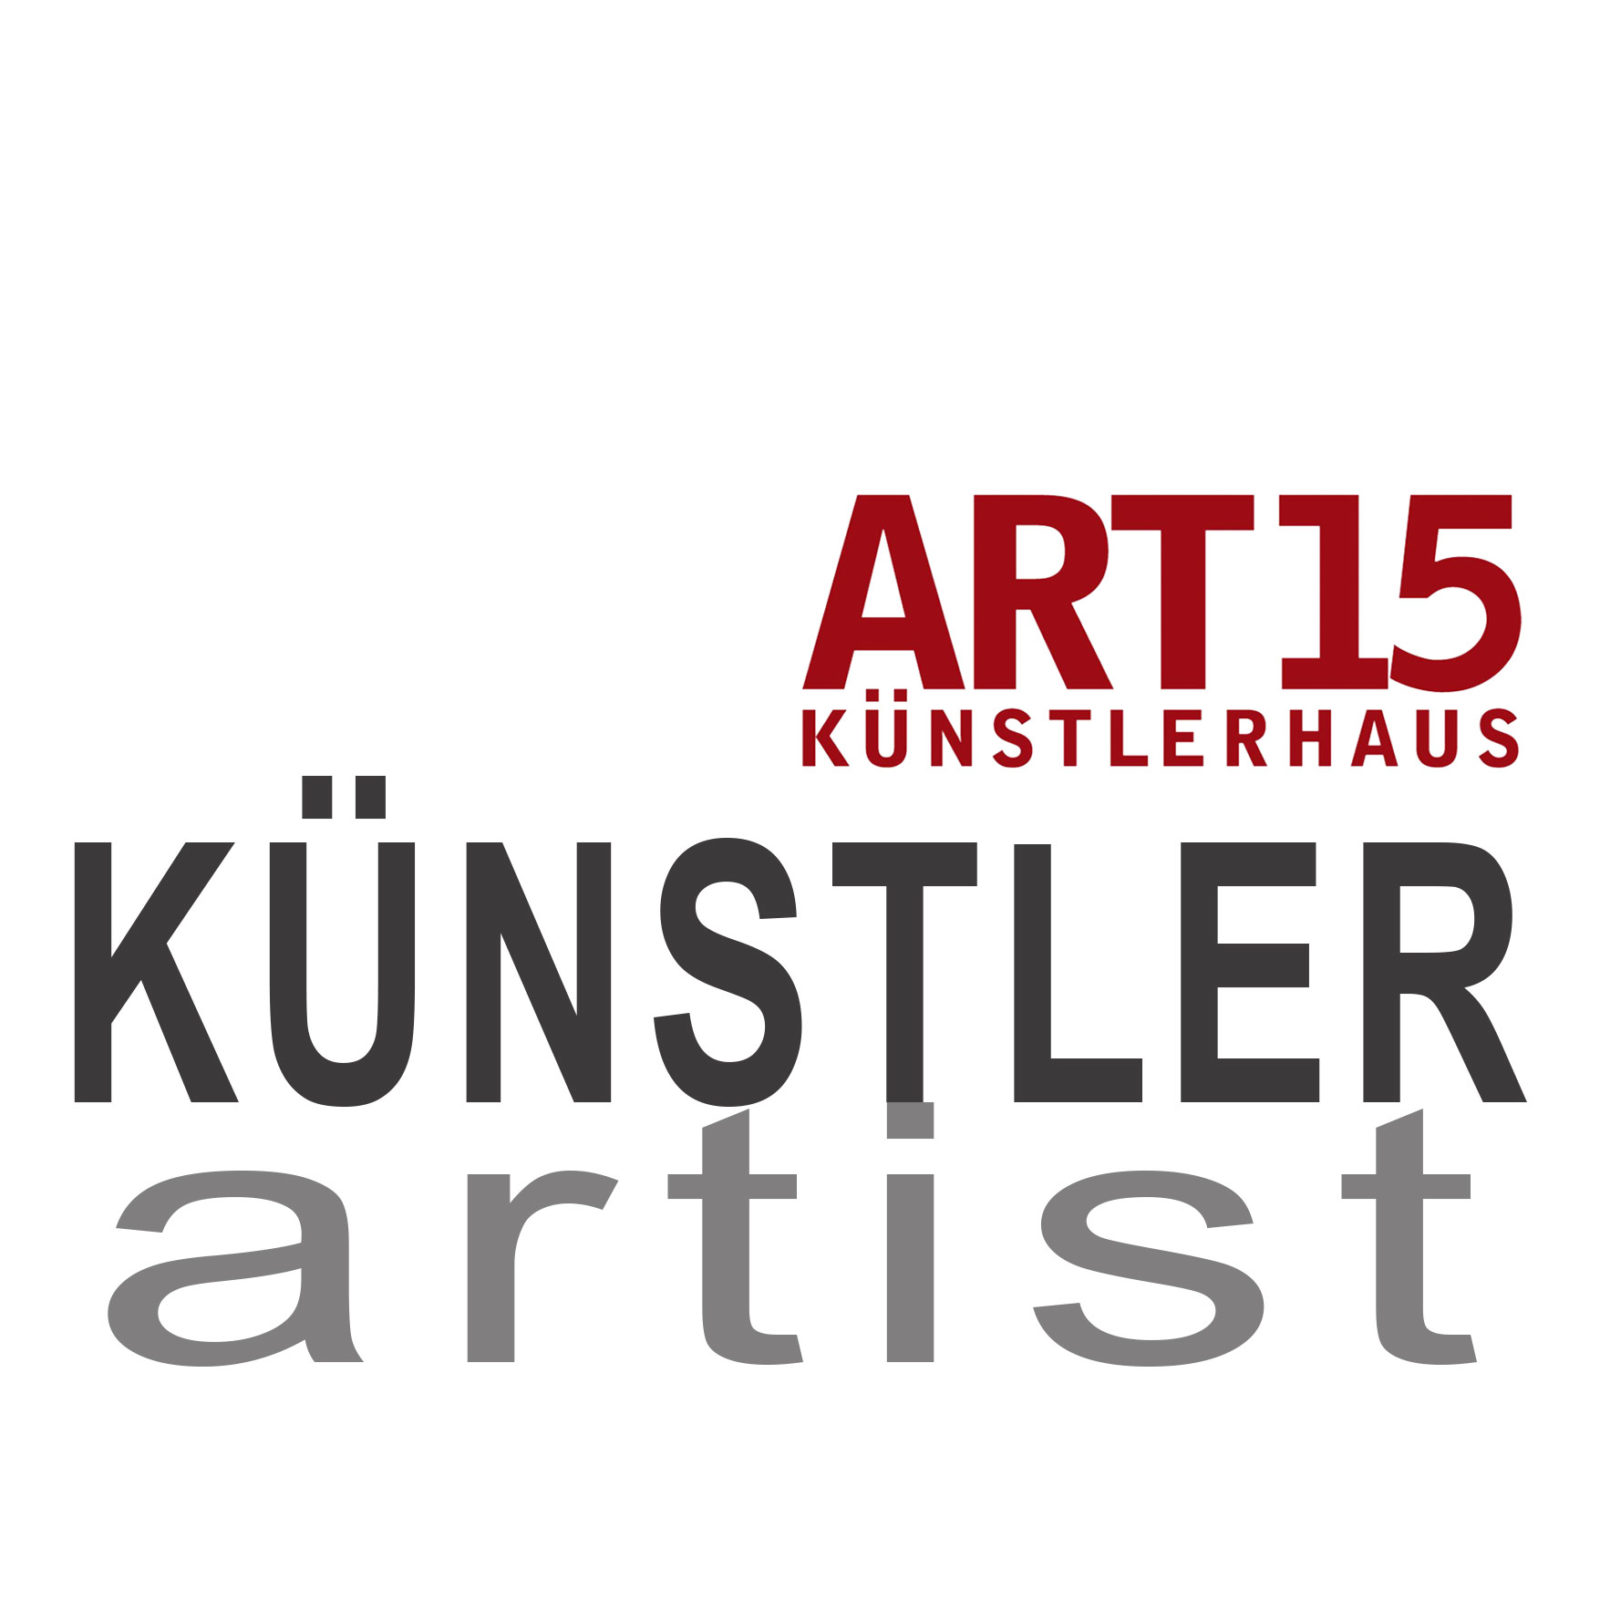 EDGAR WINTERSPERGER - HELDEN FÜR ALLE ART15 LOGO WORDS 1